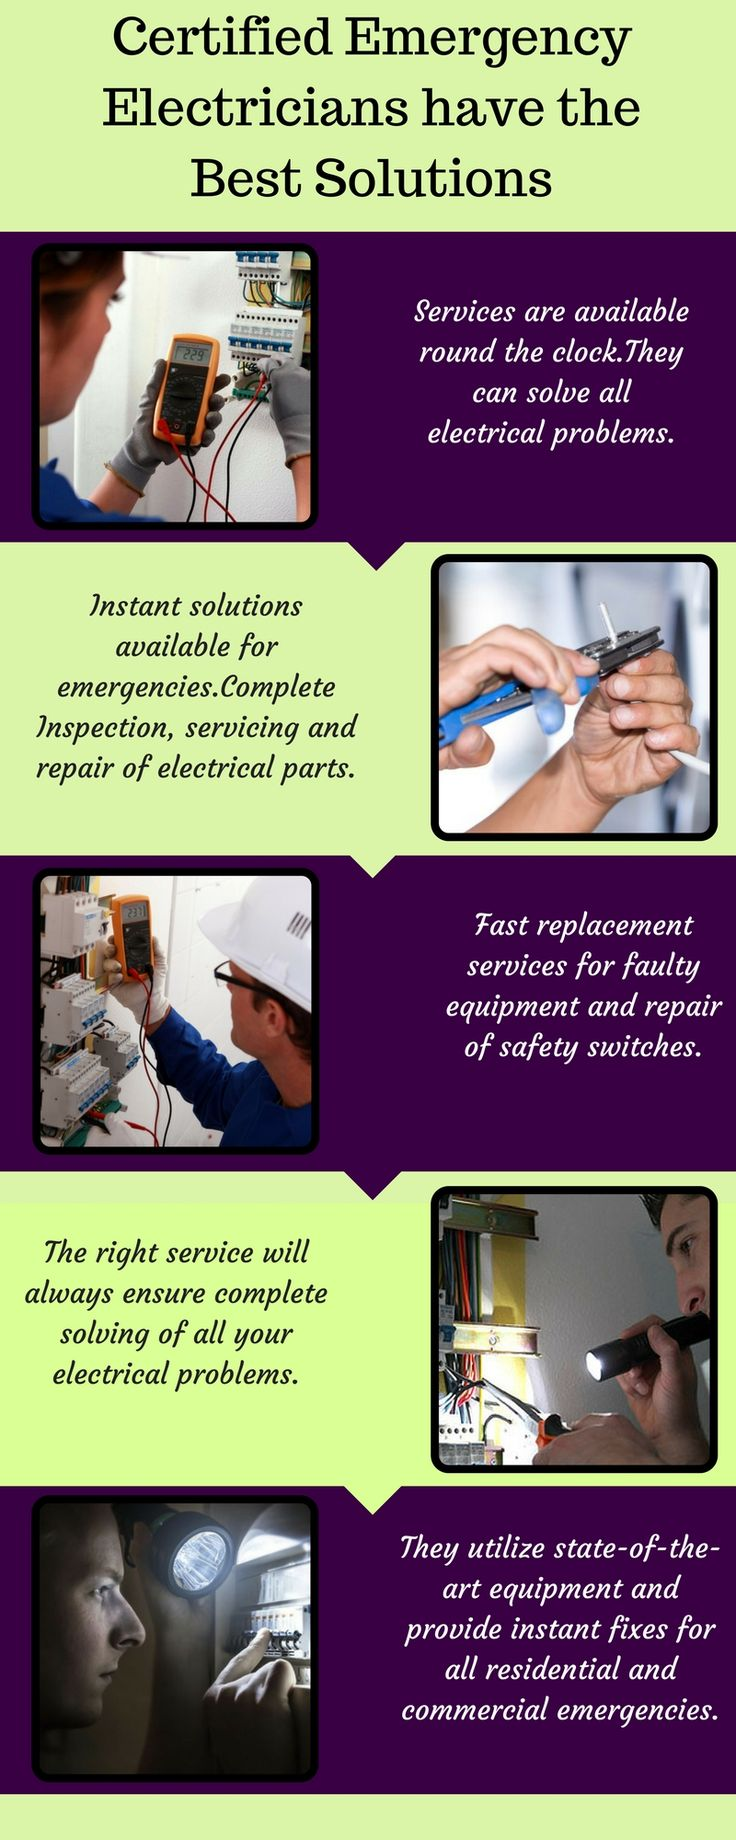 17 best ideas about electrical problems electrical the sydney emergency electrician provides round the clock services the right services always ensure complete